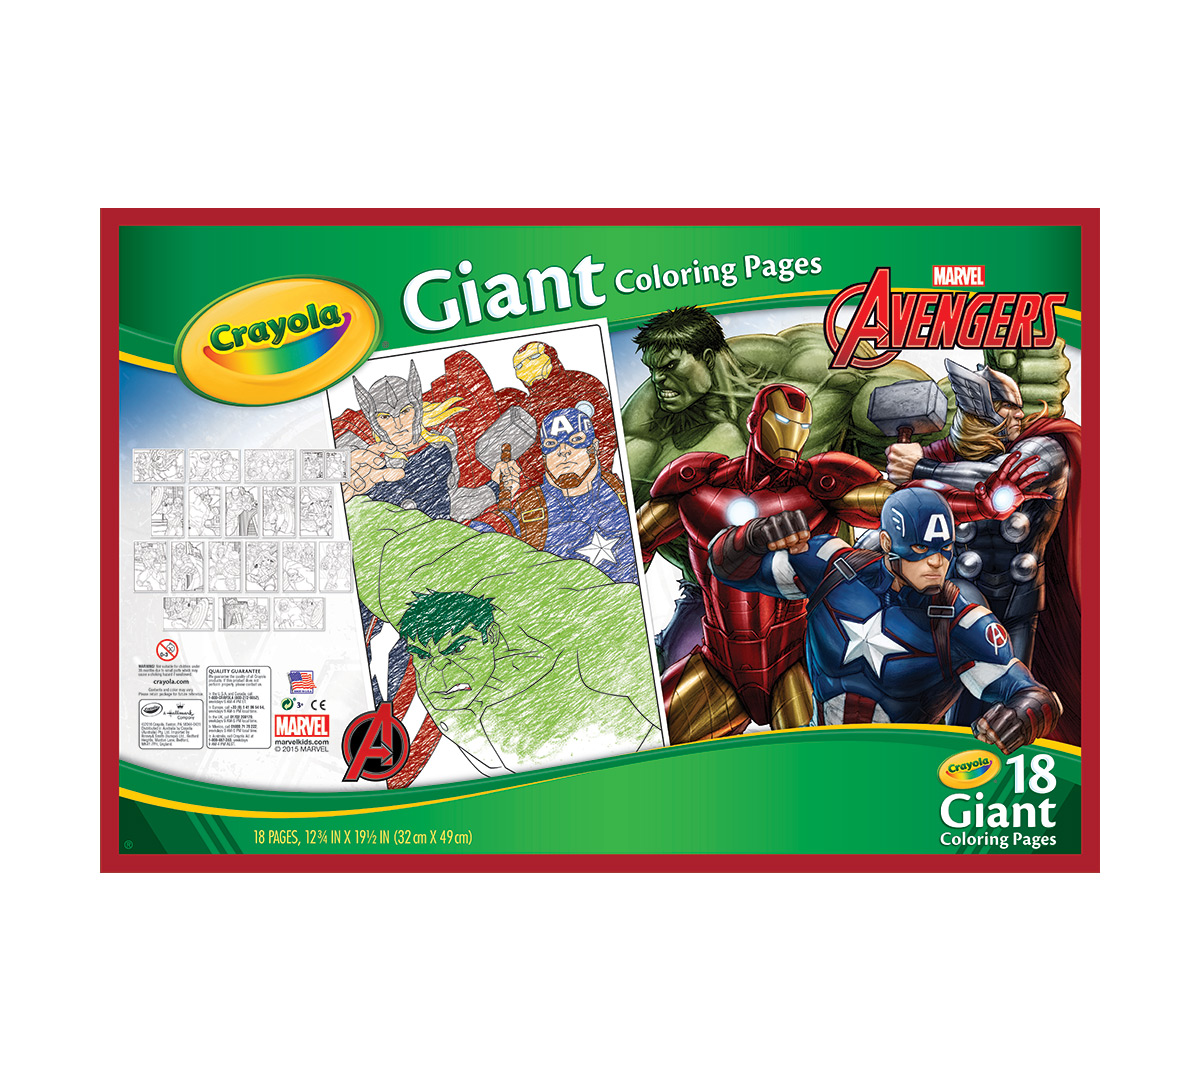 Giant Coloring Pages Avengers